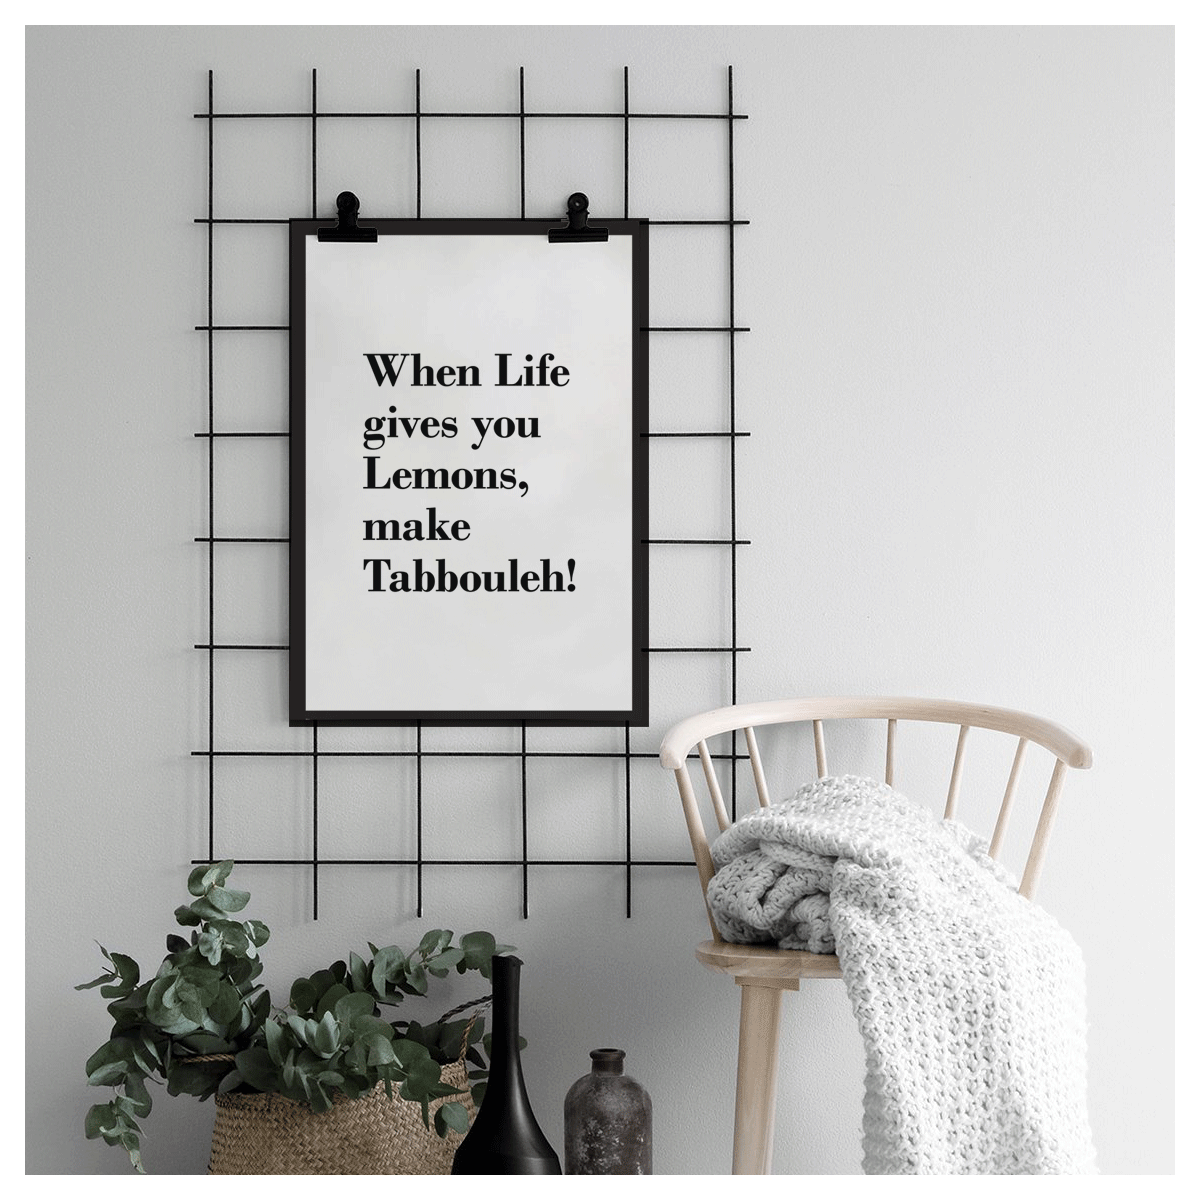 Motivational wall art, posters with quotes, inspirational posters,Yislamoo